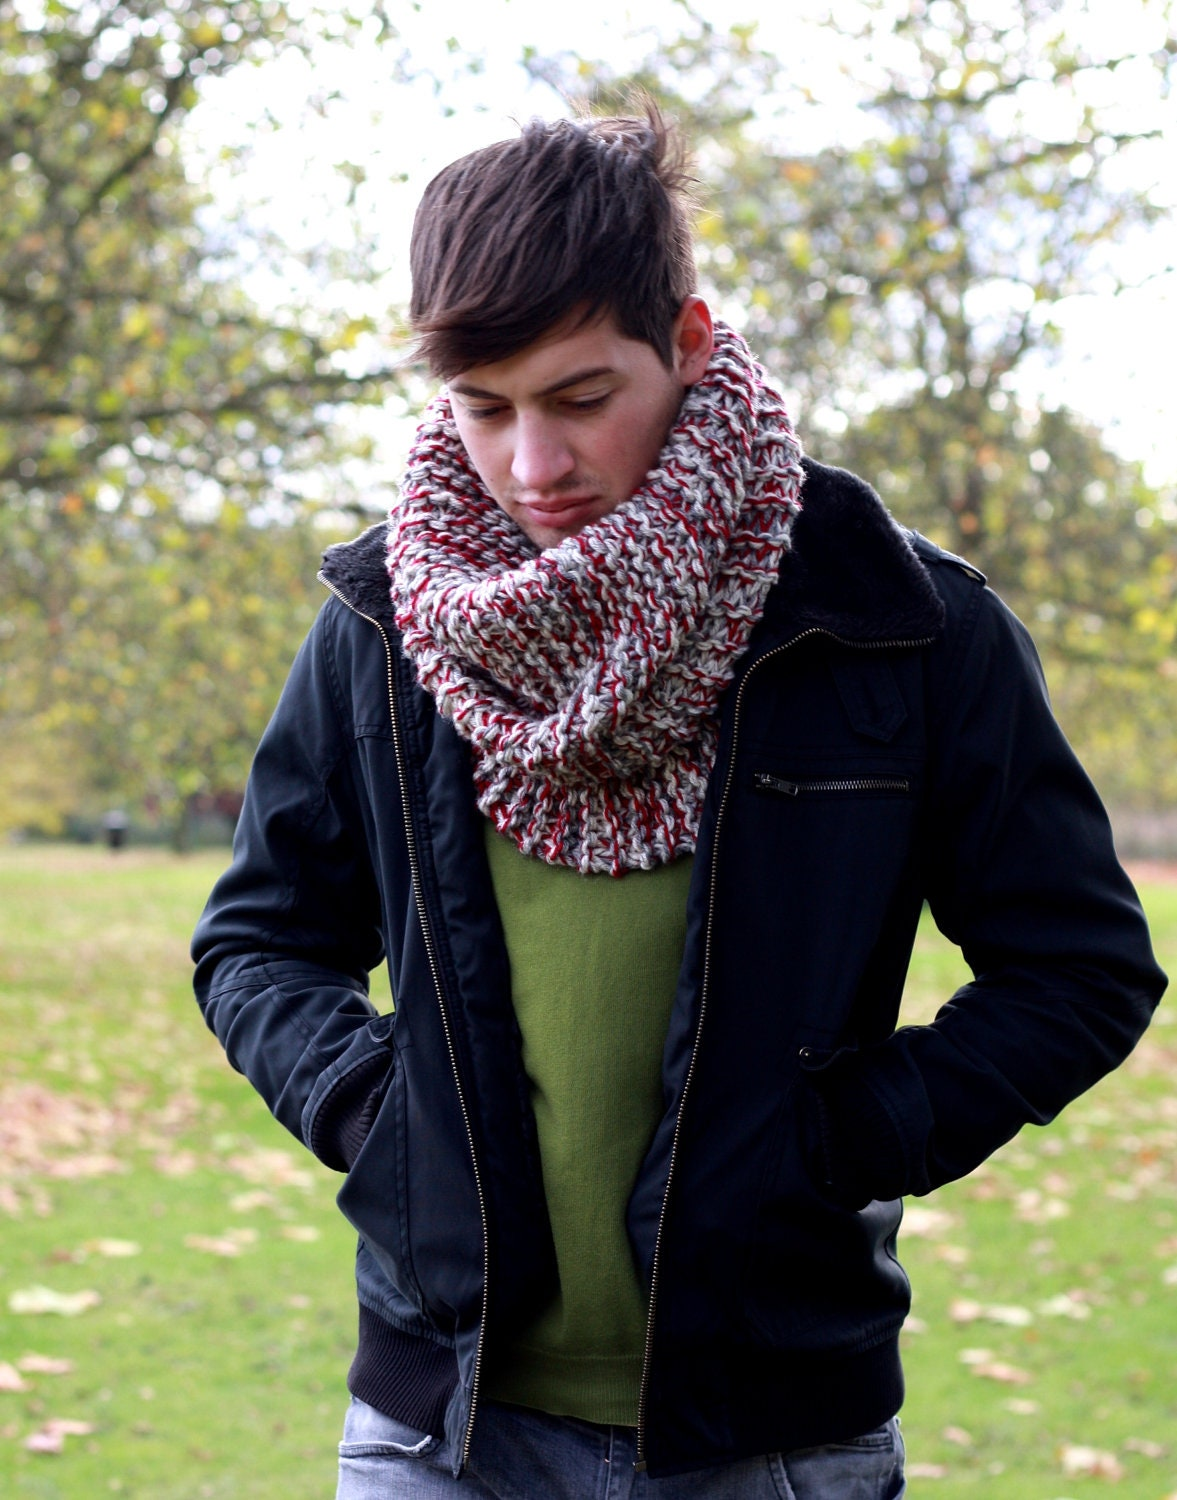 Mens Cowl Neck Scarf Chunky Oversized Cowl Neckwarmer Fall Winter  Cowl Neck Scarves Men